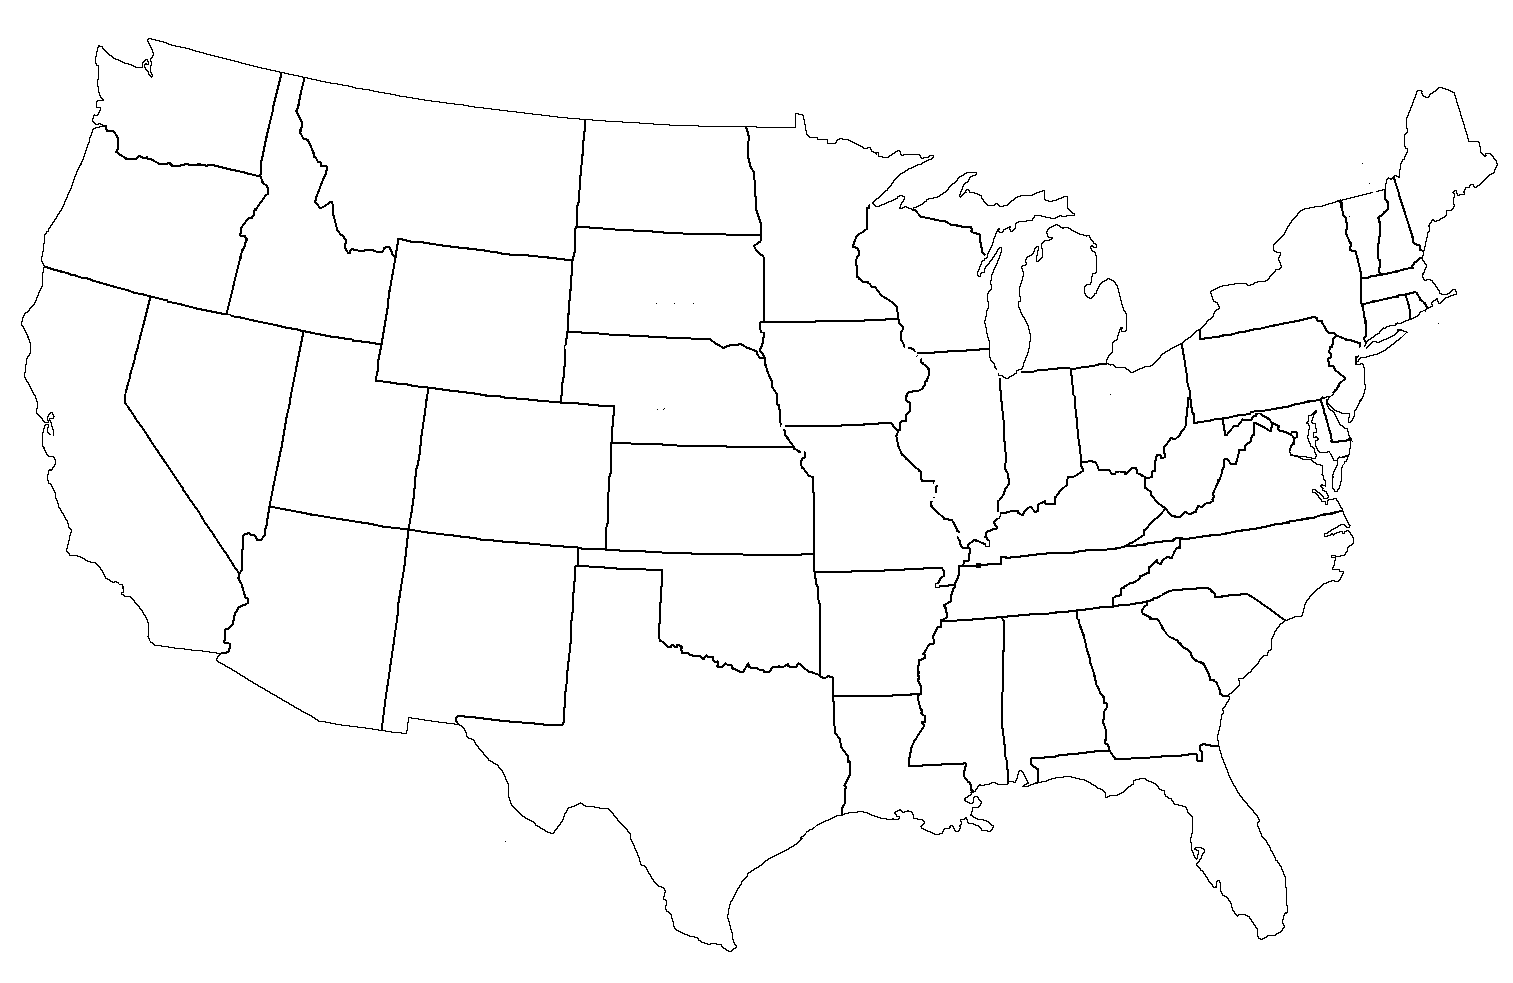 FileUnited States Administrative Divisions Blankpng Wikimedia - Us blank state map